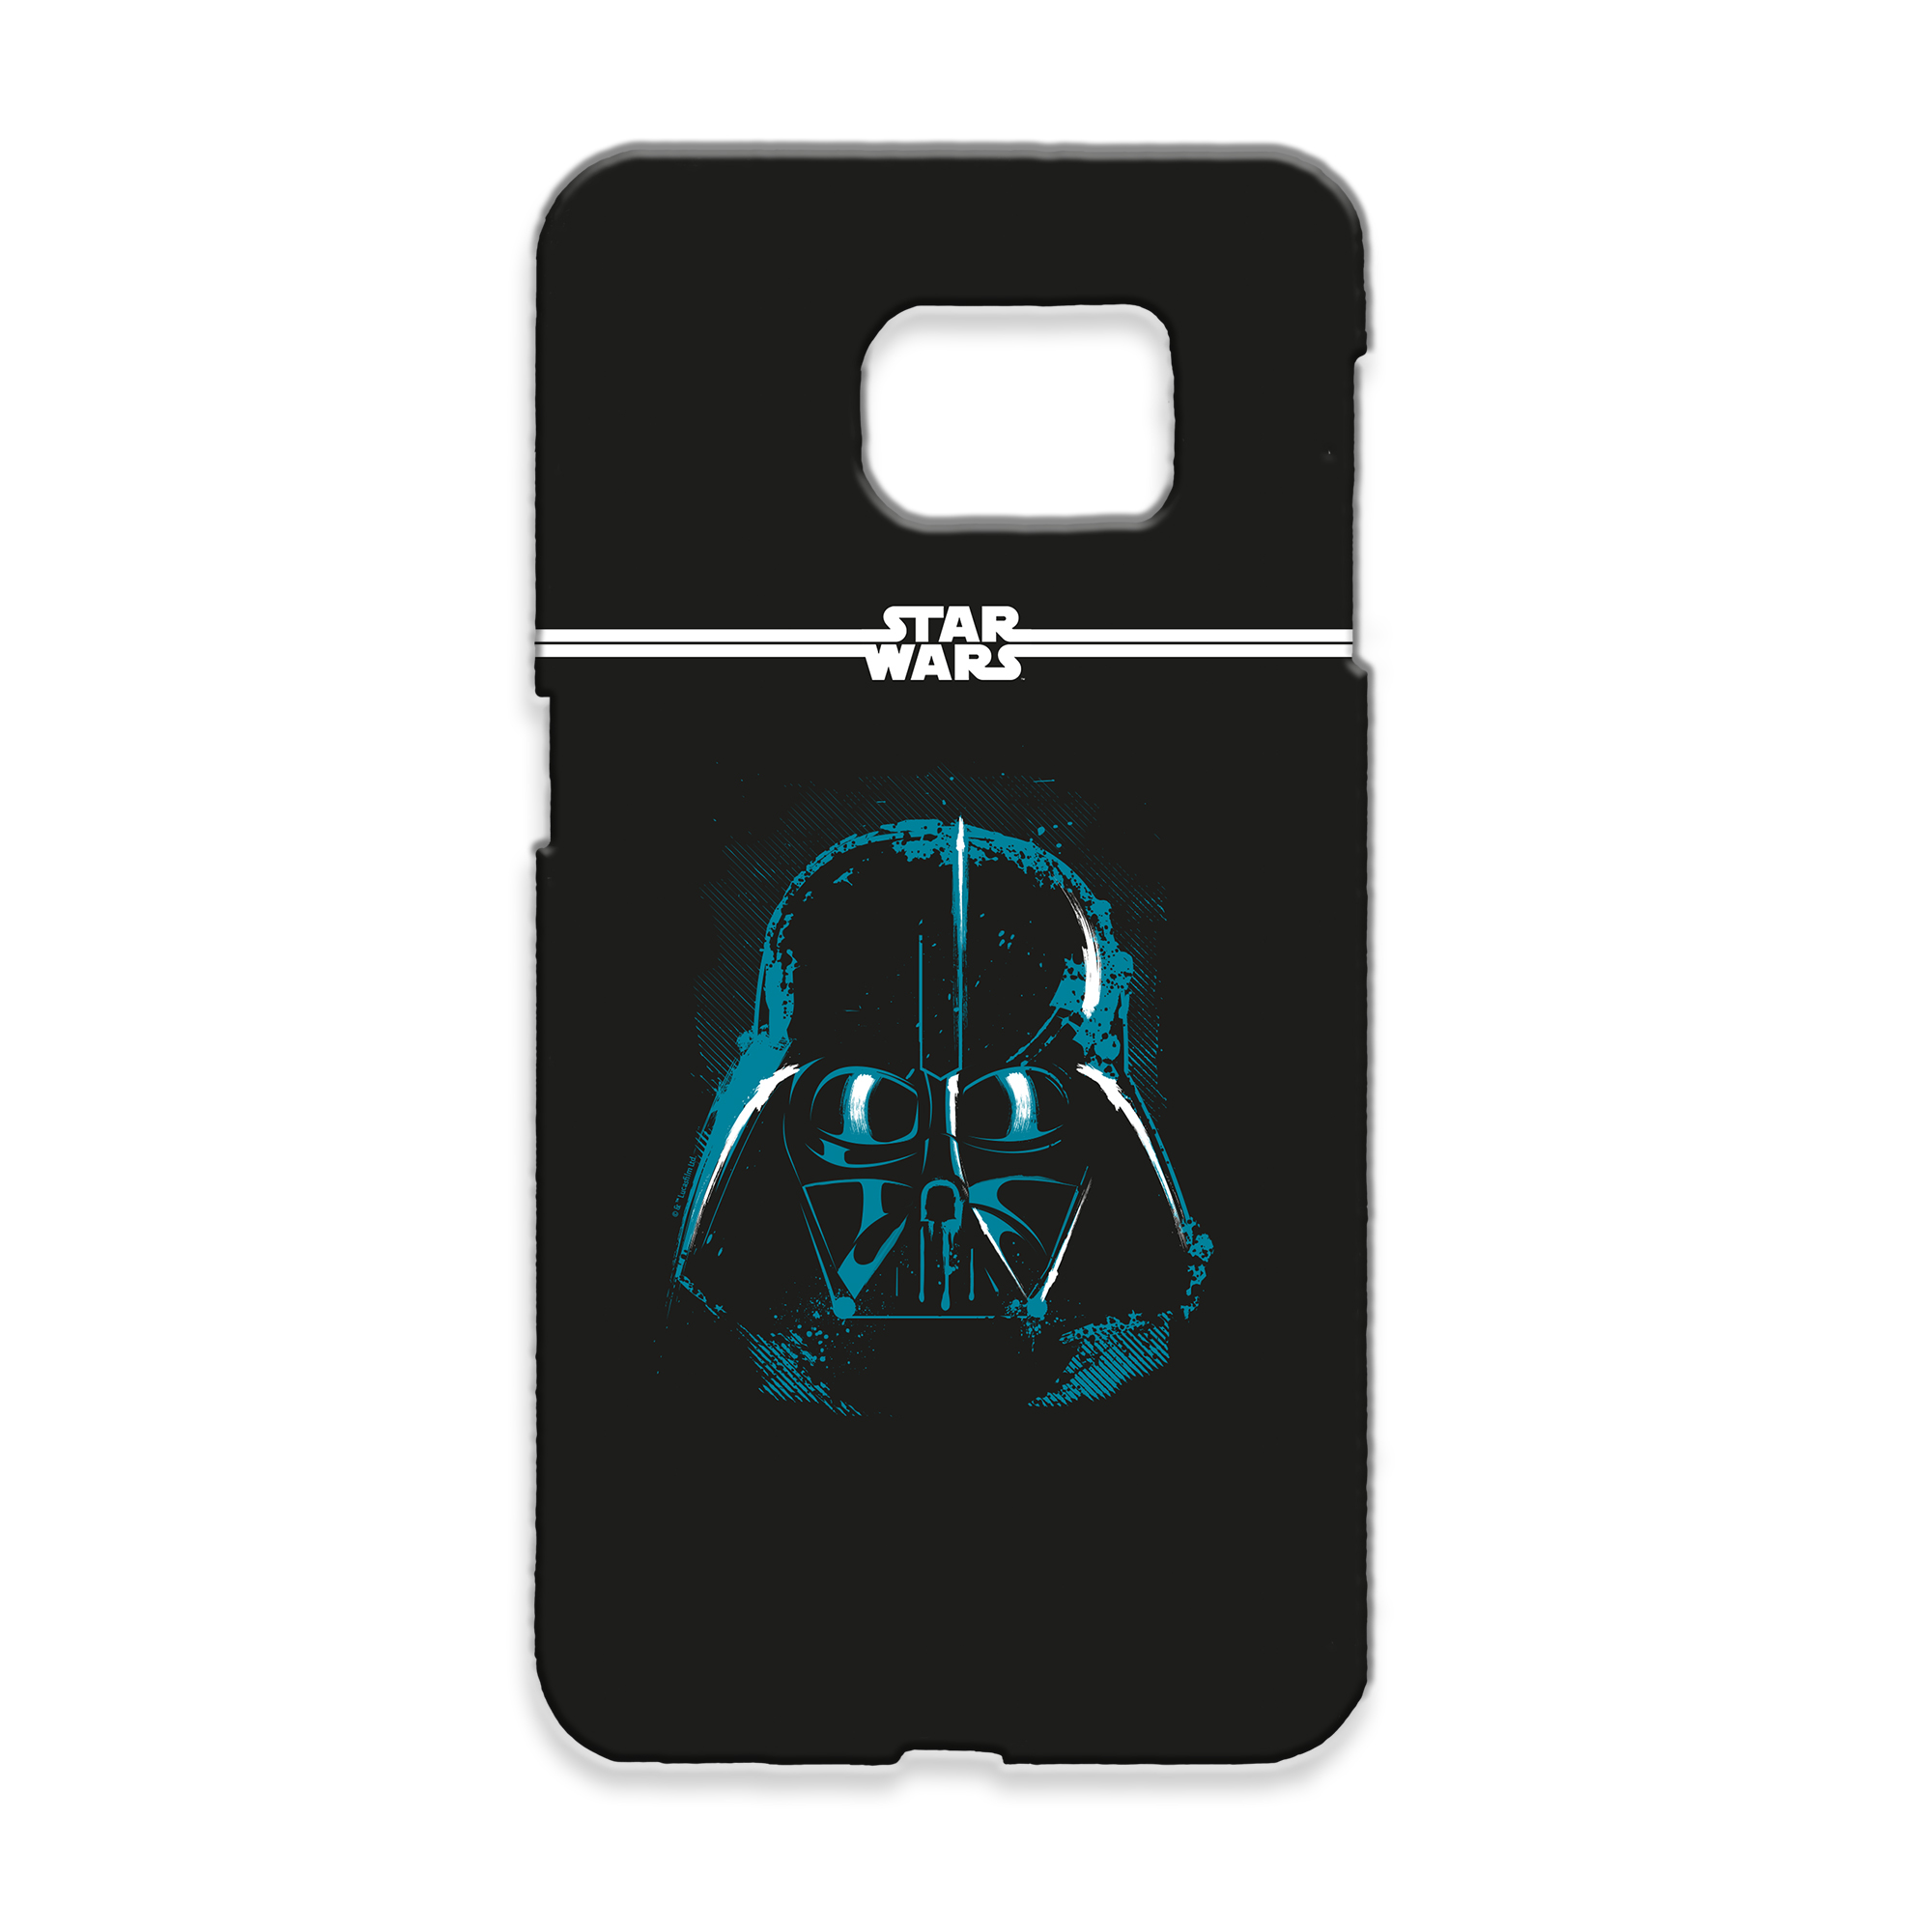 Star Wars Darth Vader Paint Samsung Phone Case